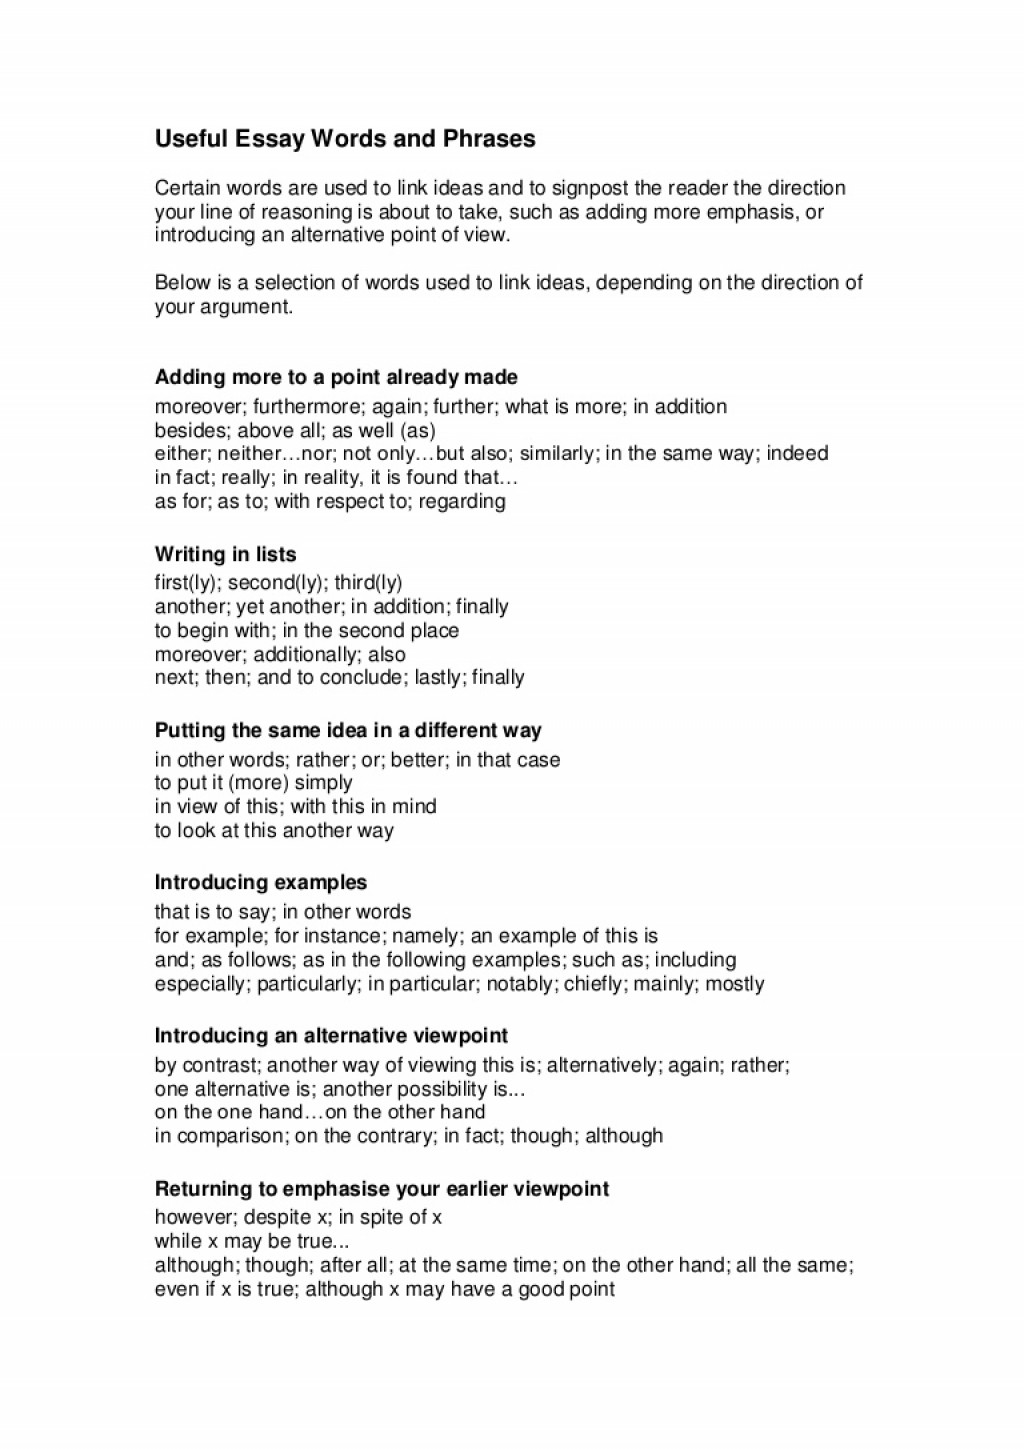 016 Essay Example Writtenassignments2usefulessaywordsandphrases Phpapp02 Thumbnail How To Begin Incredible An Write On A Book You Didn't Read Open Paragraph Start About Yourself For College Large